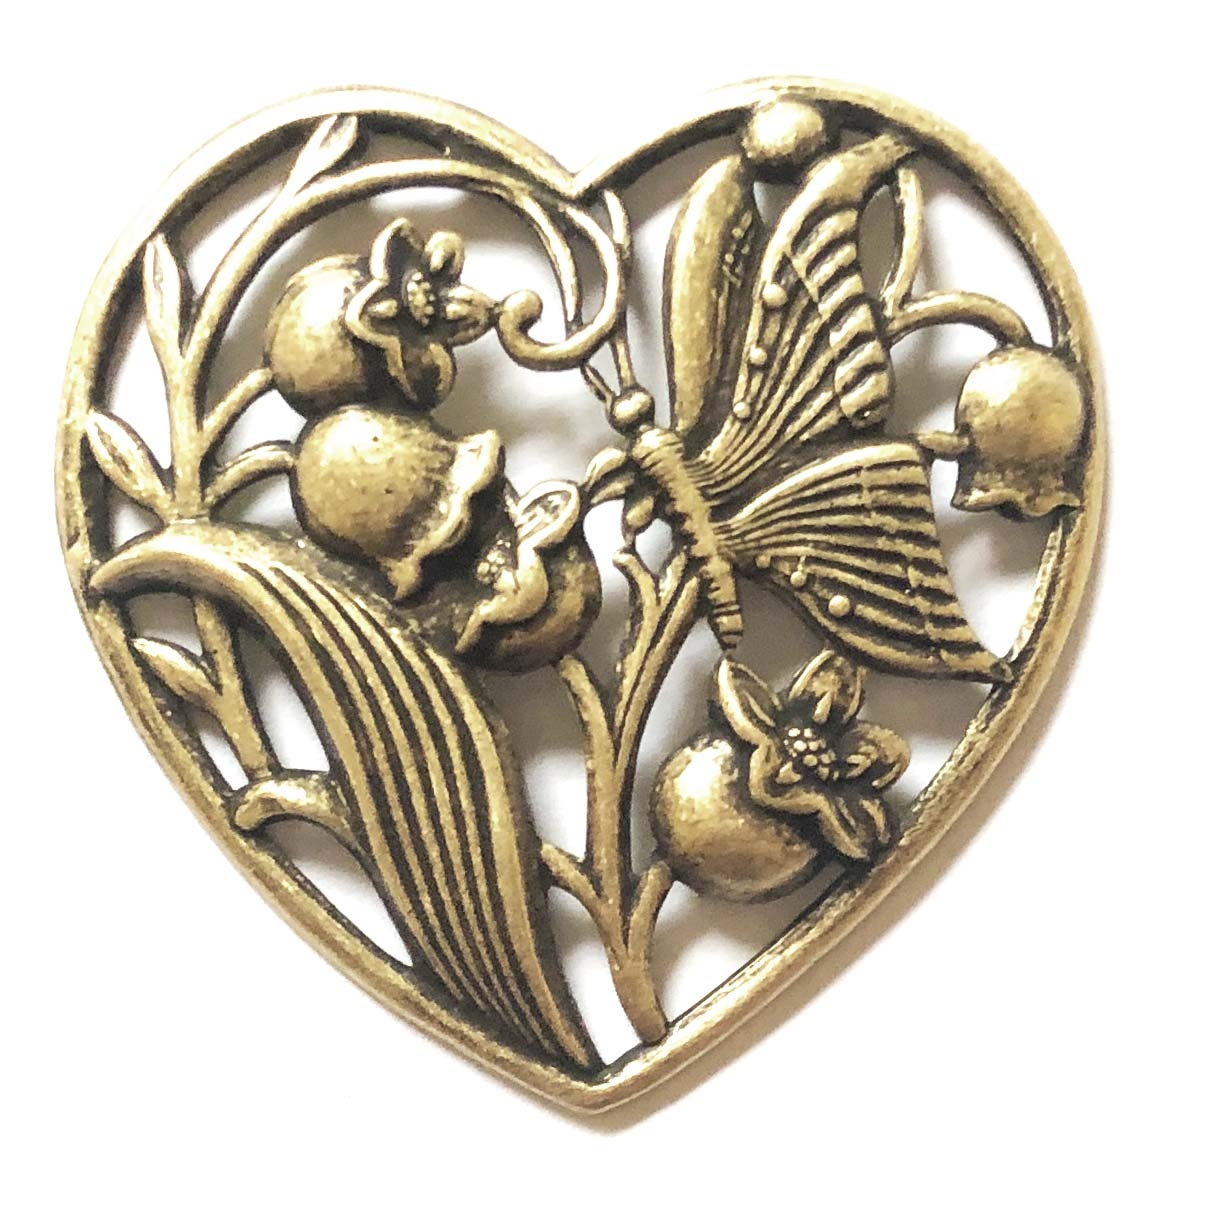 brass hearts, lily of the valley heart, heart stampings, filigree hearts, 09264, jewelry making, brass ox, black antiquing, jewelry making supplies, vintage jewelry supplies, US made, nickel free jewelry supplies